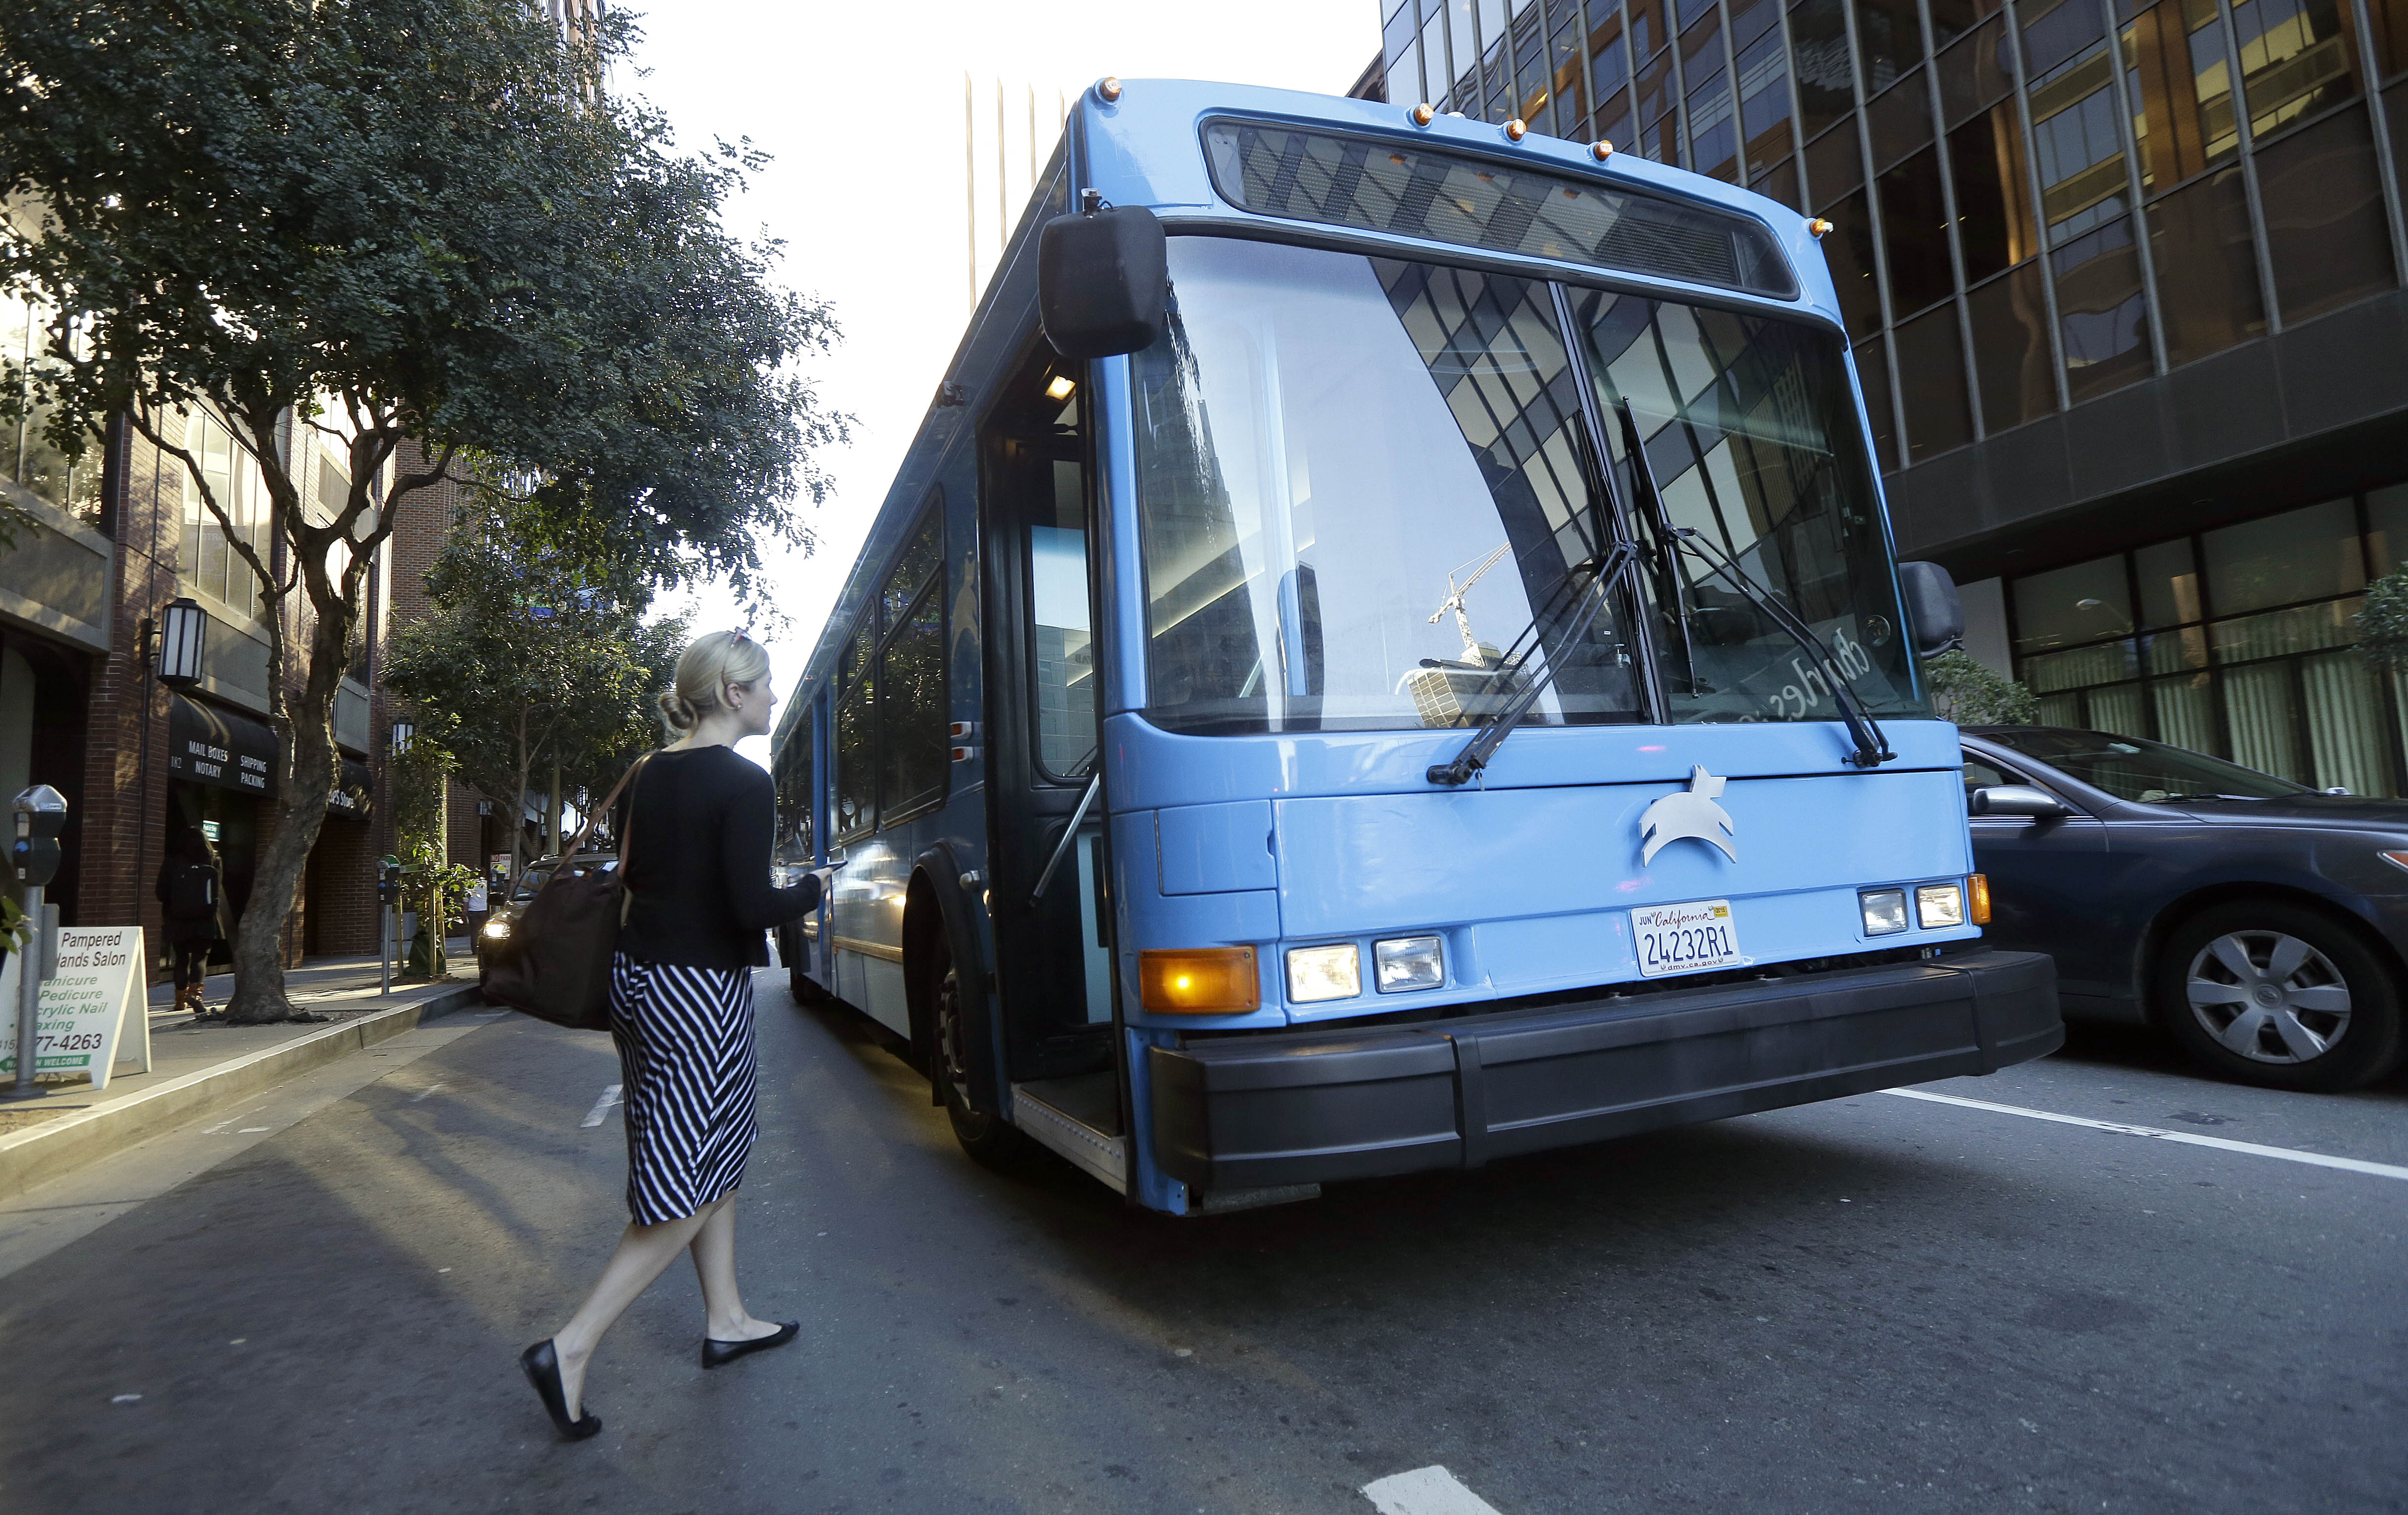 A person getting bus to work